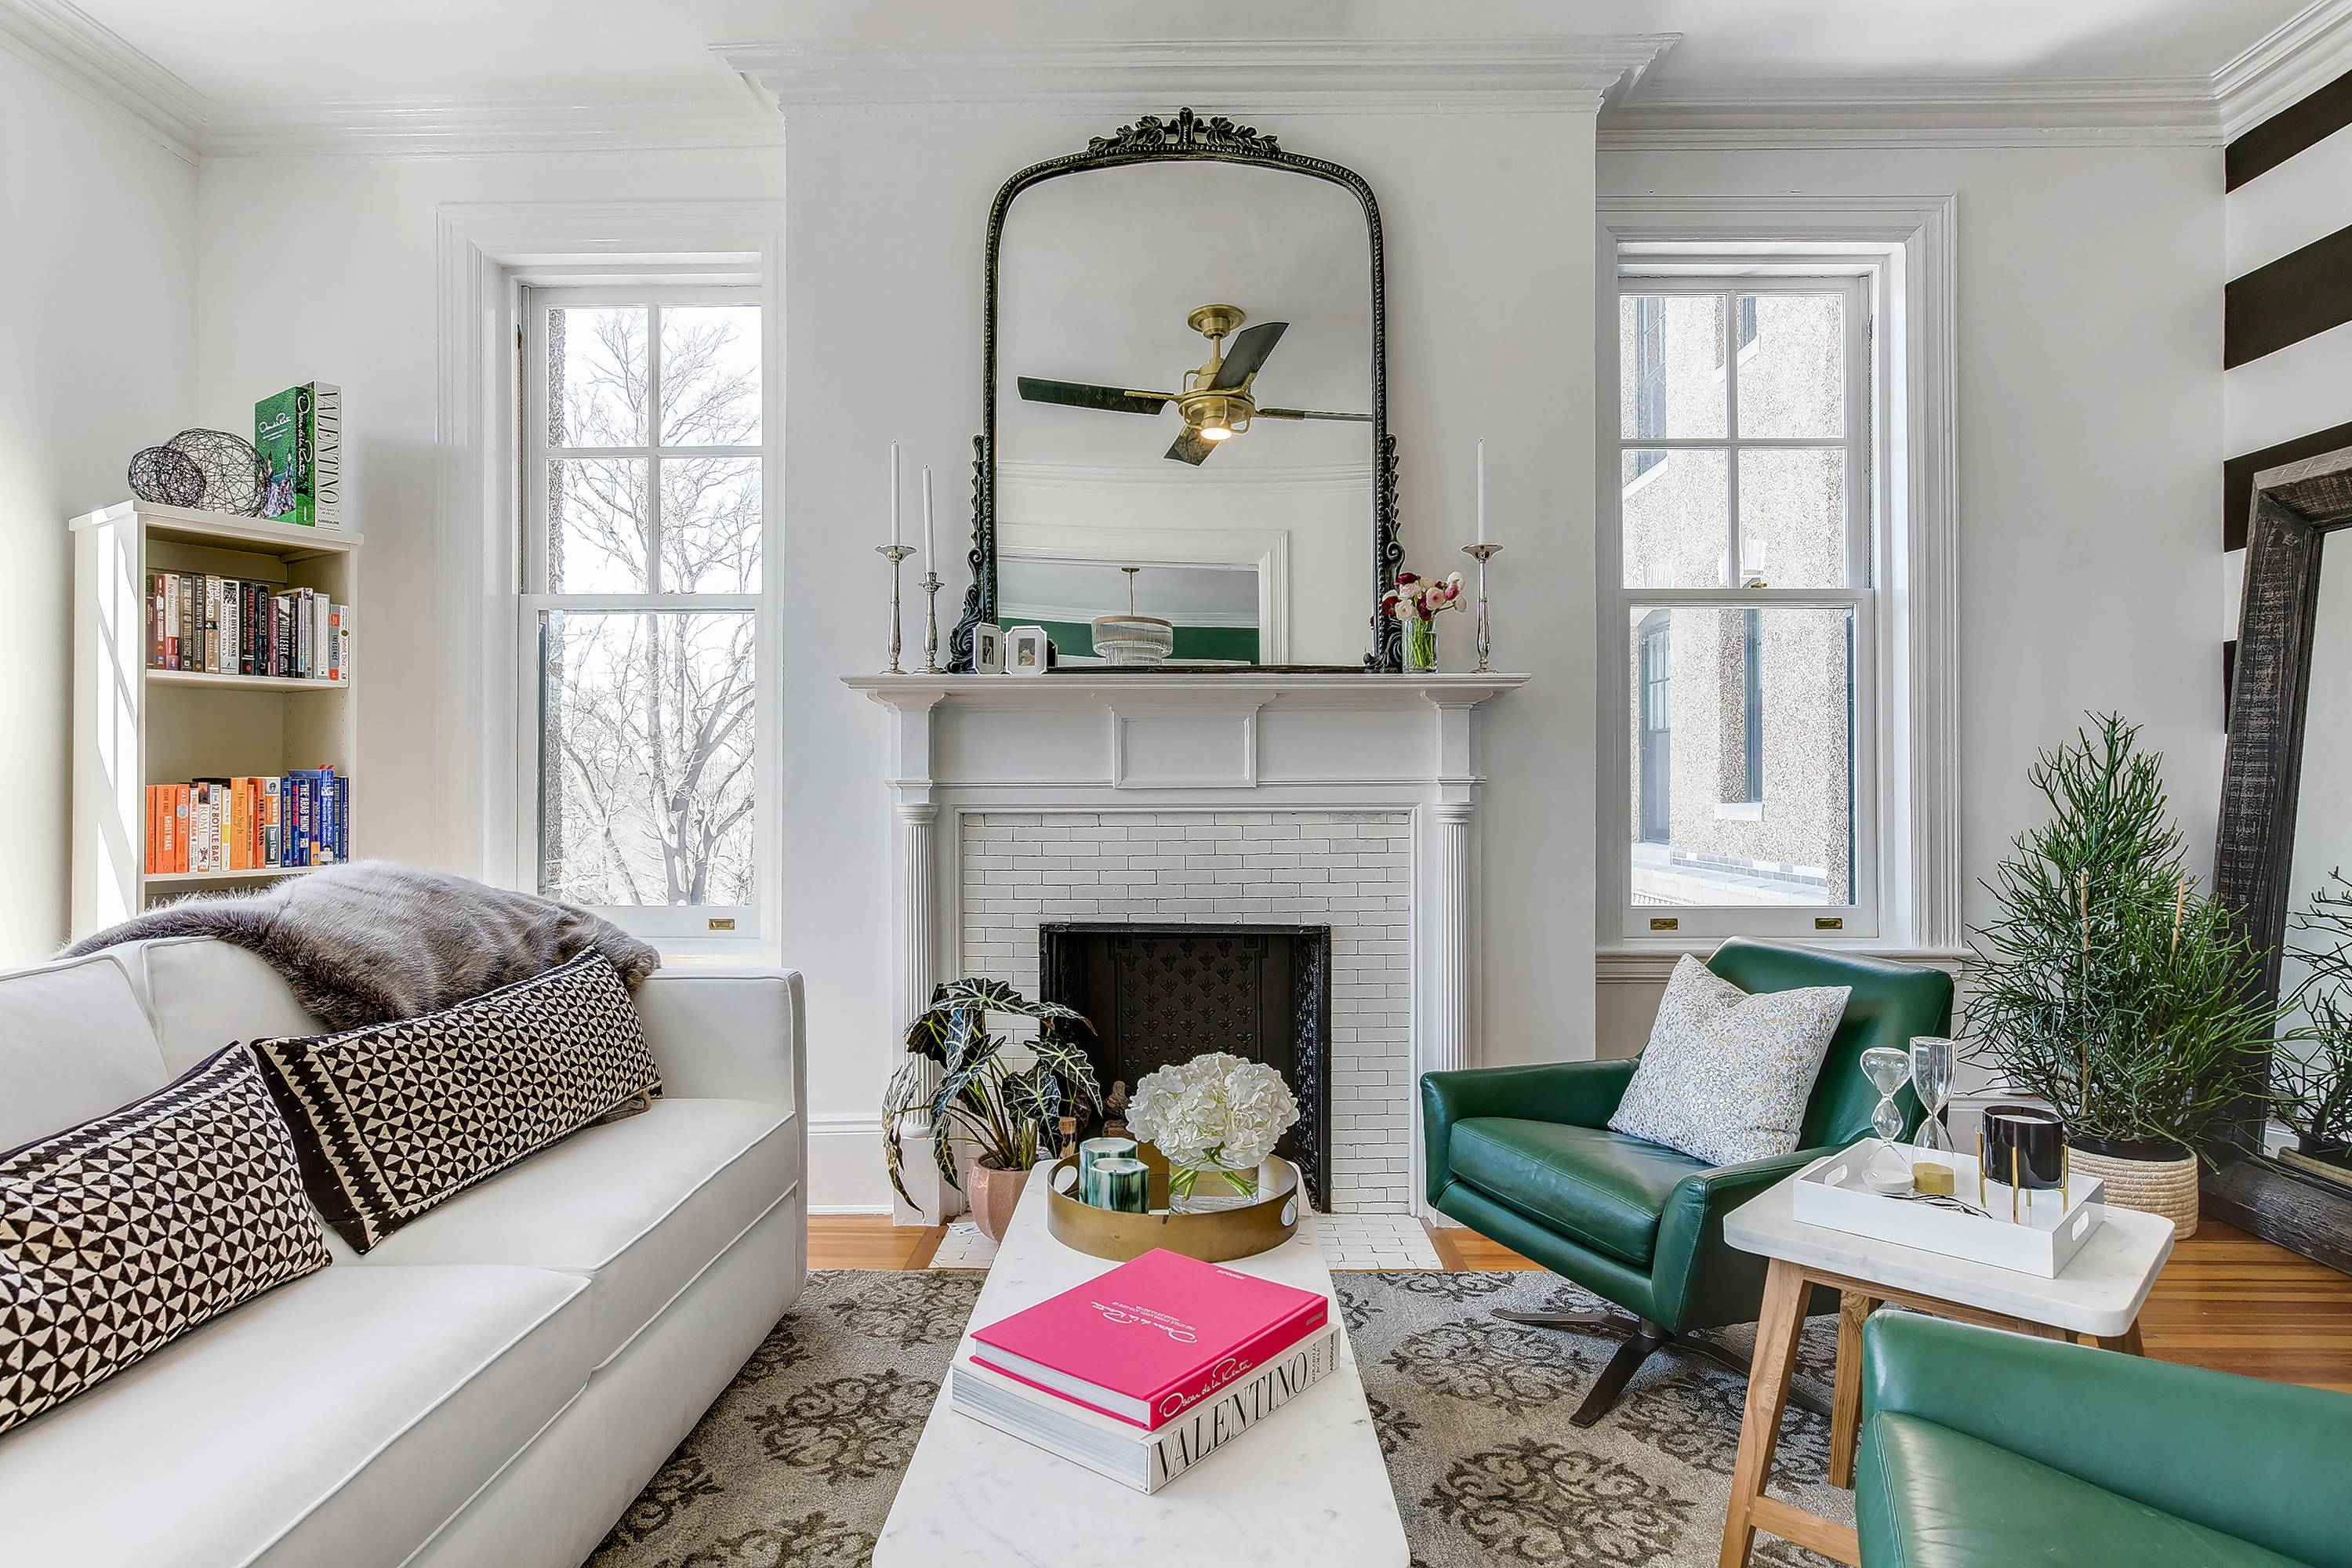 Seating in Louisa Bargeron's living room is arranged around the original fireplace and mantel.